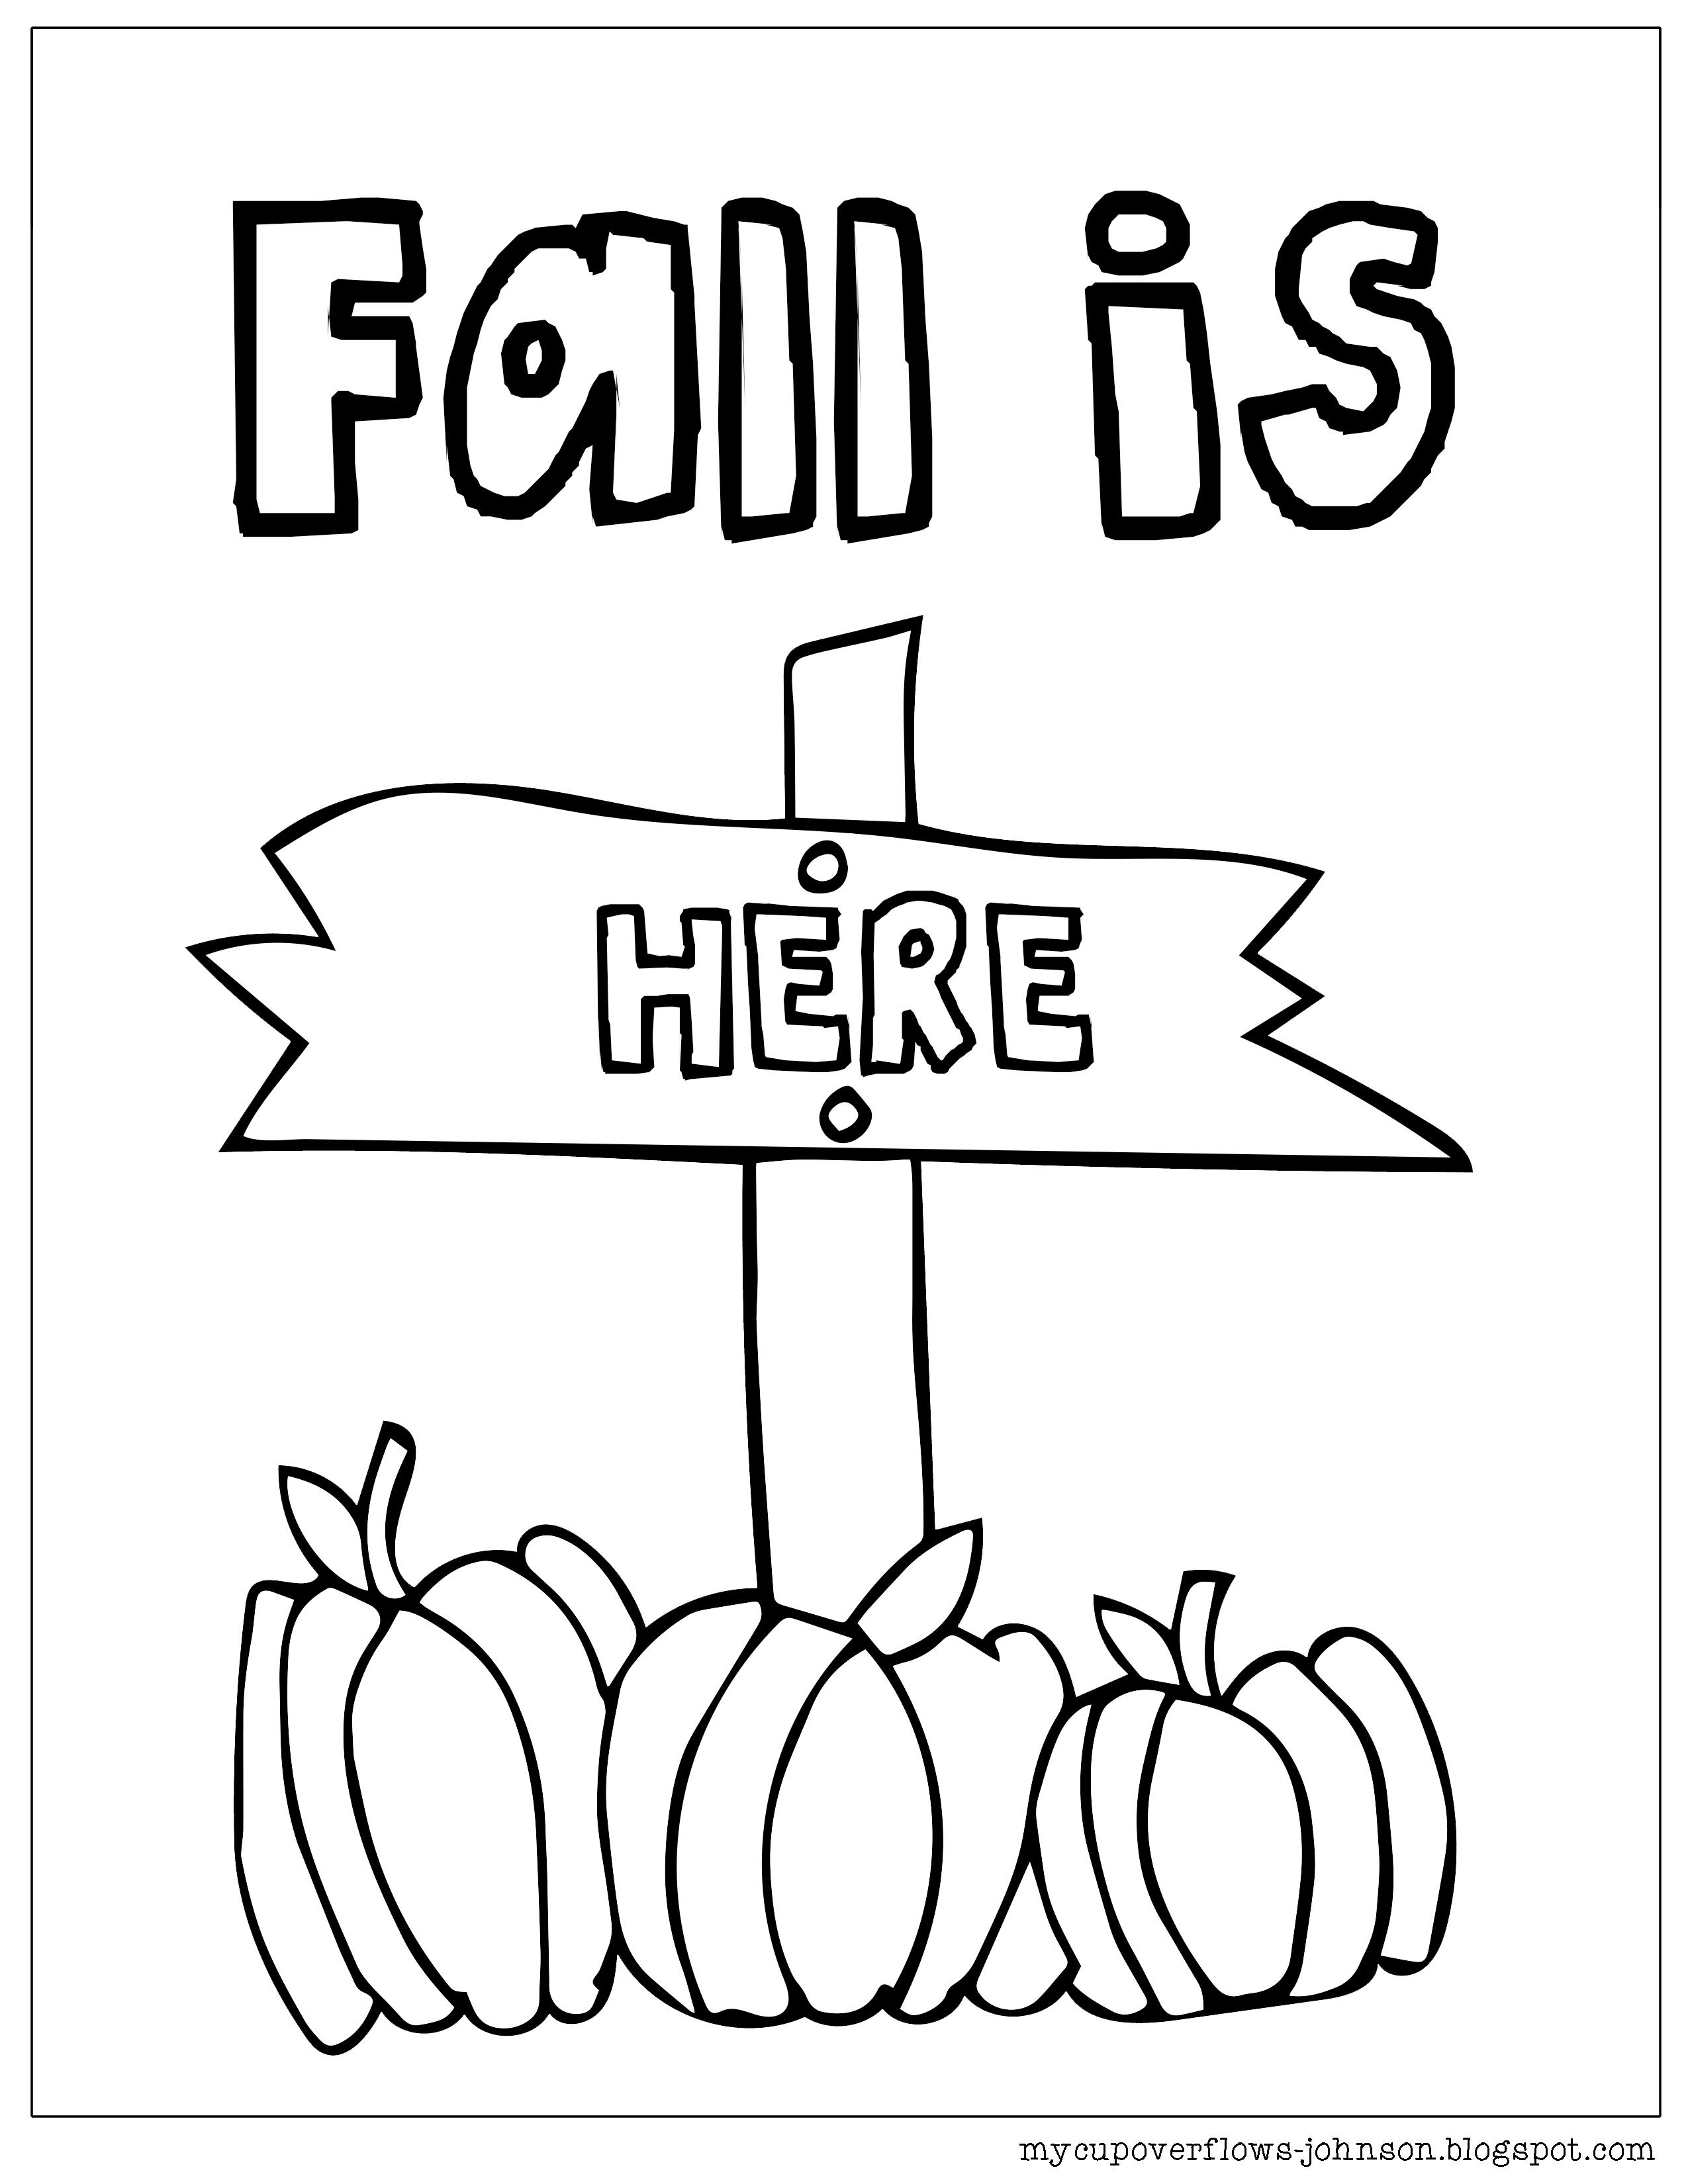 Coloring Pages For Fall Coloring Pages Pumpkin Coloring Pages Free Printable Coloring Pages [ 3300 x 2550 Pixel ]